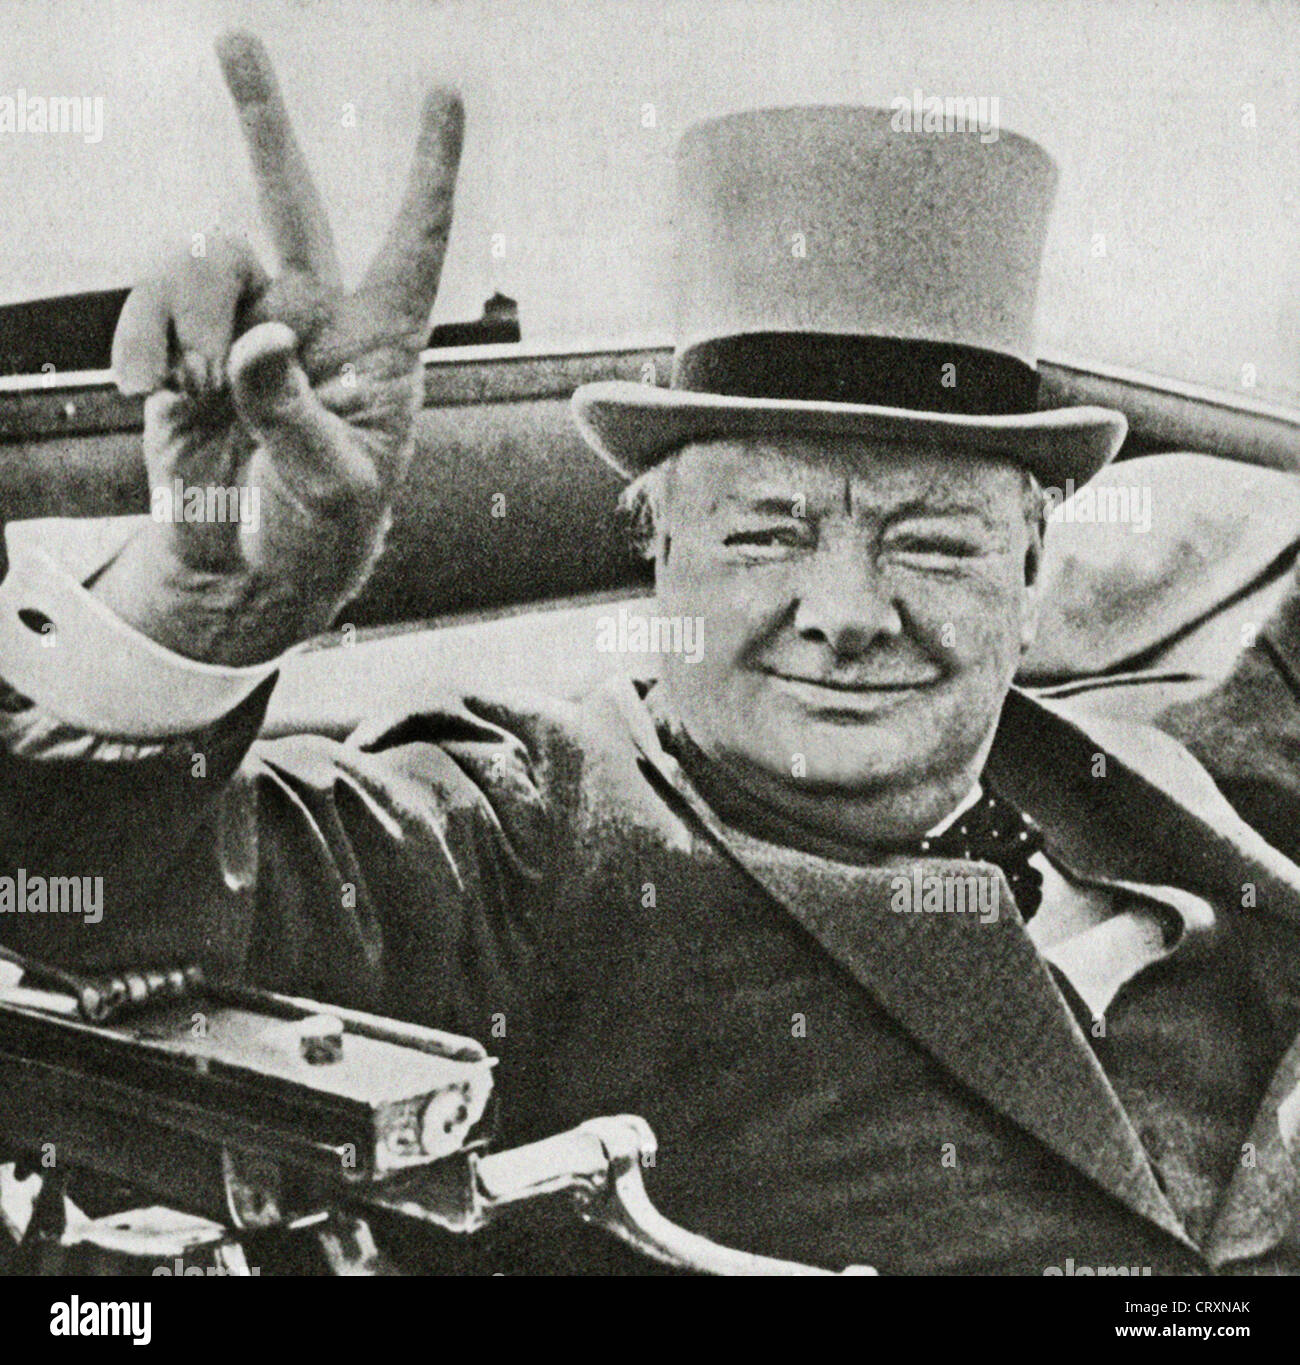 British wartime leader Winston Churchill with his famous V for victory sign. - Stock Image